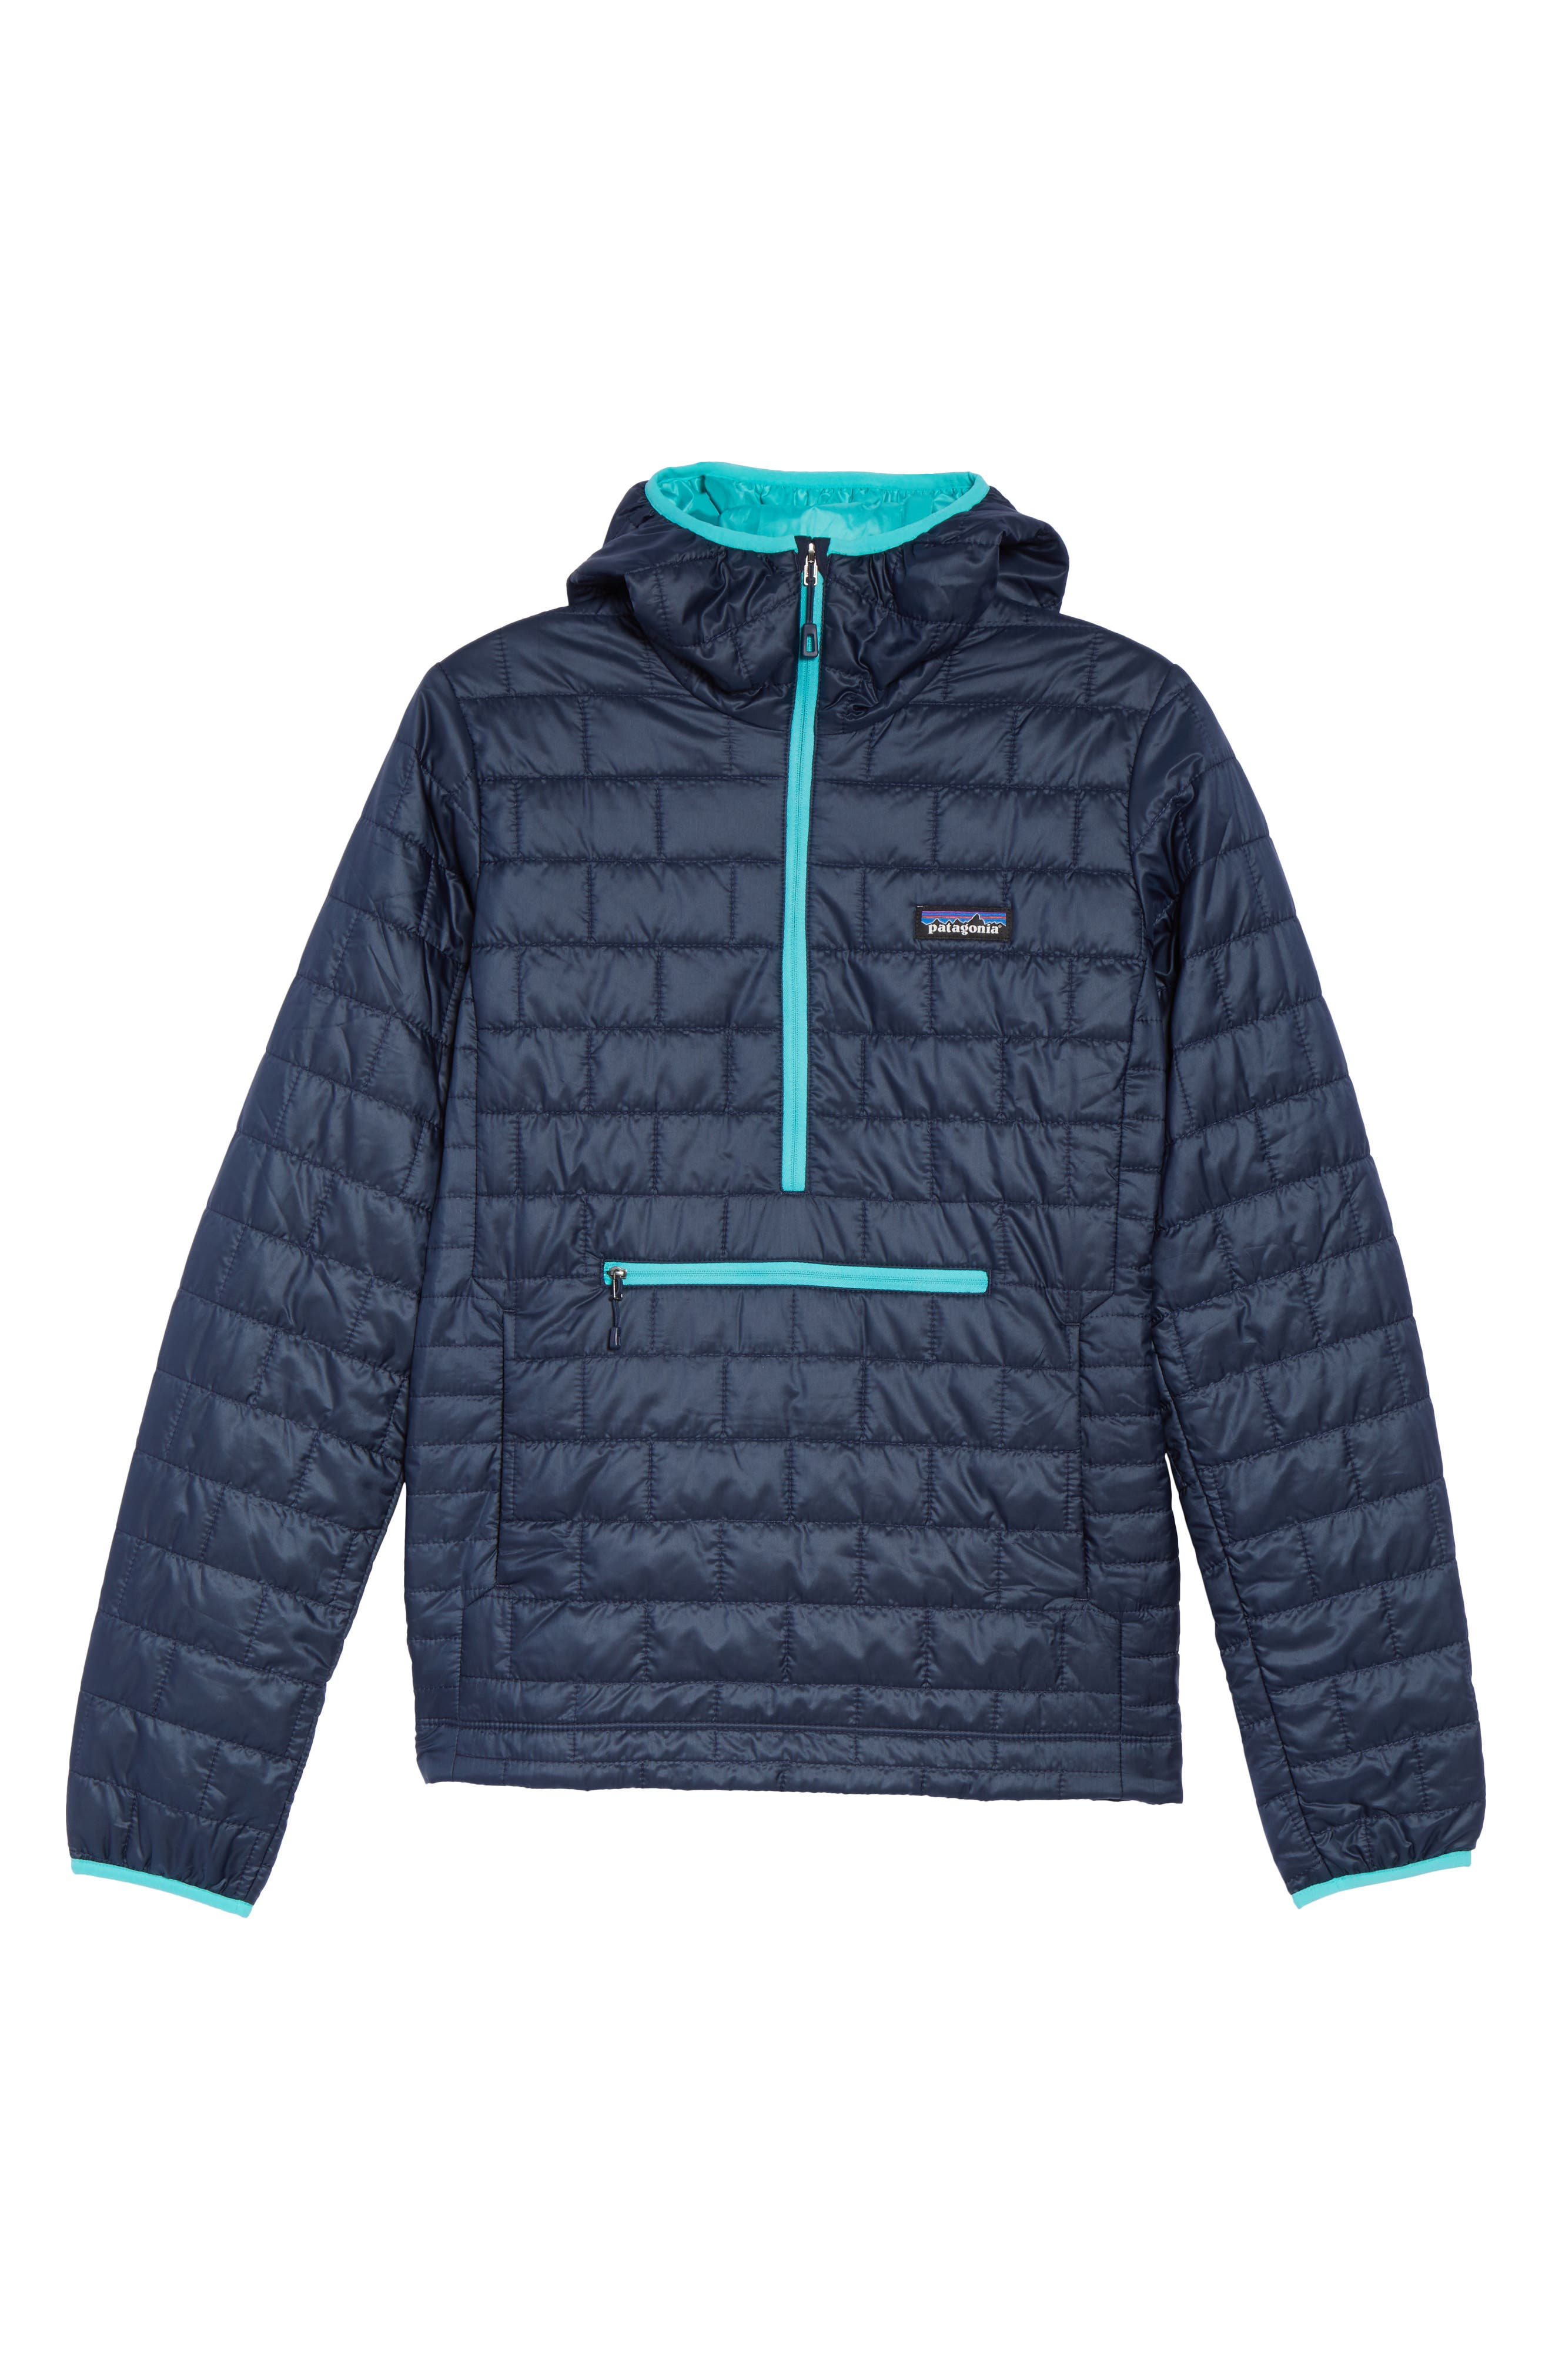 Nano Puff<sup>®</sup> Bivy Water Resistant Jacket,                             Alternate thumbnail 28, color,